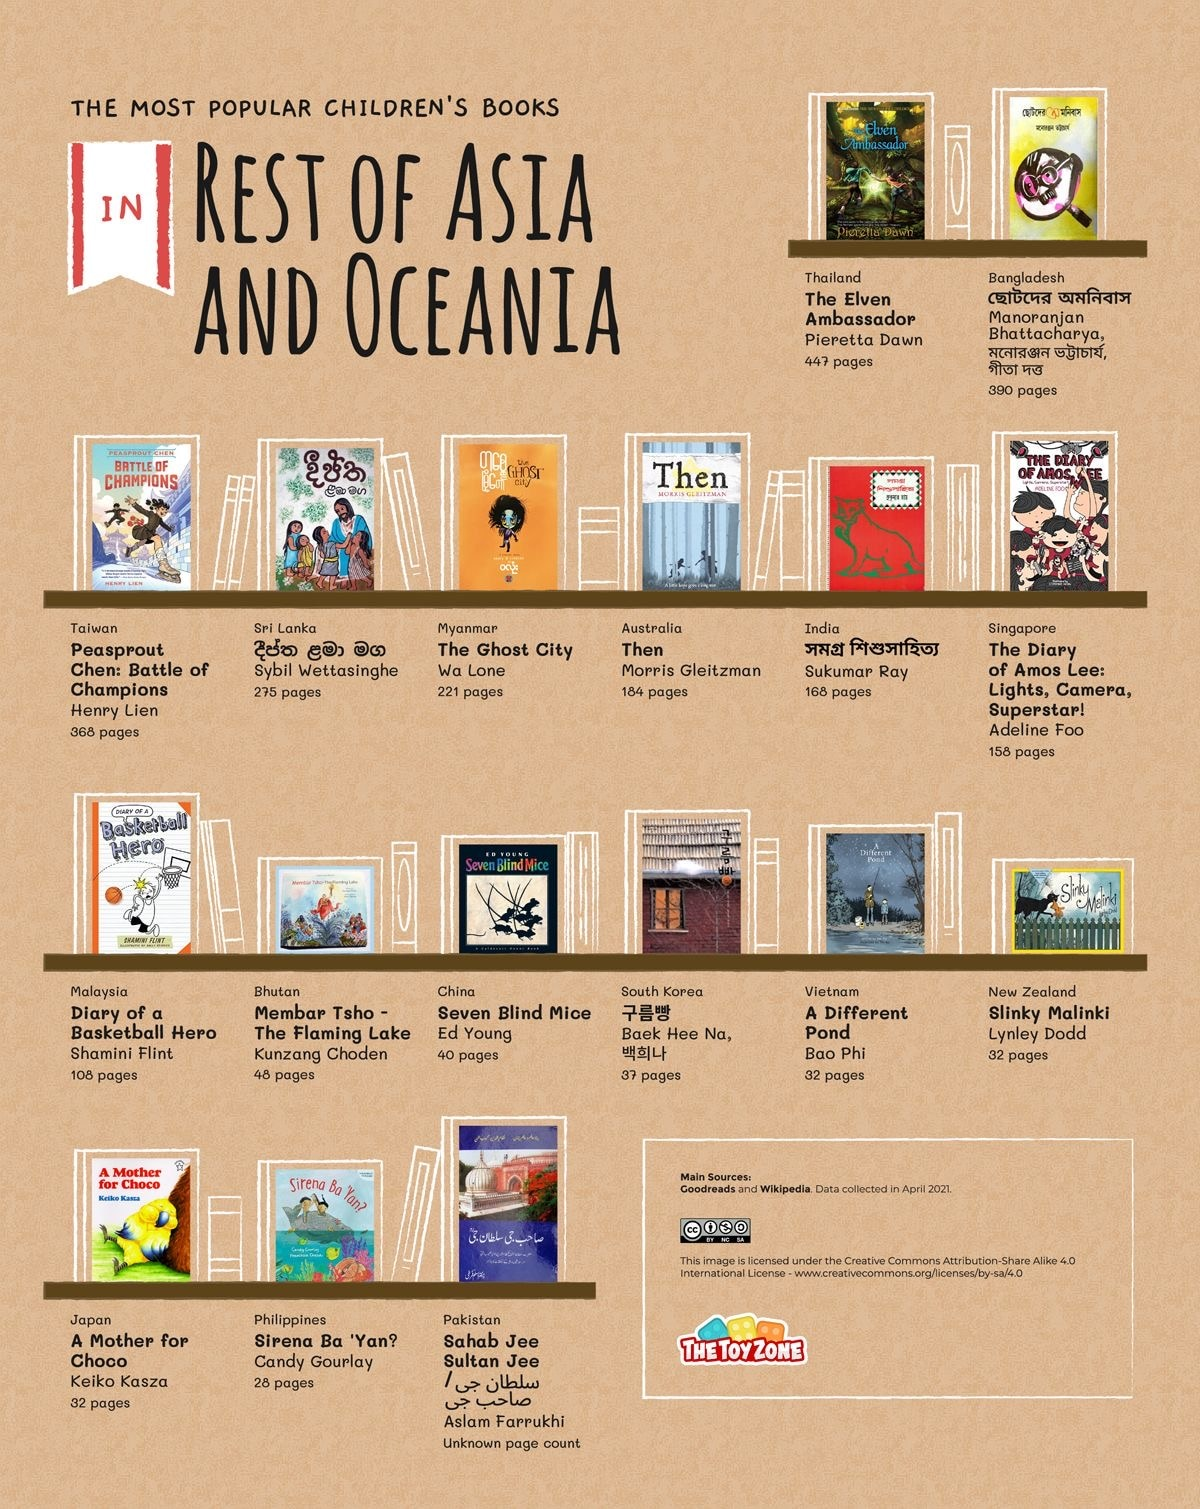 Most read children's books in East Asia and Oceania